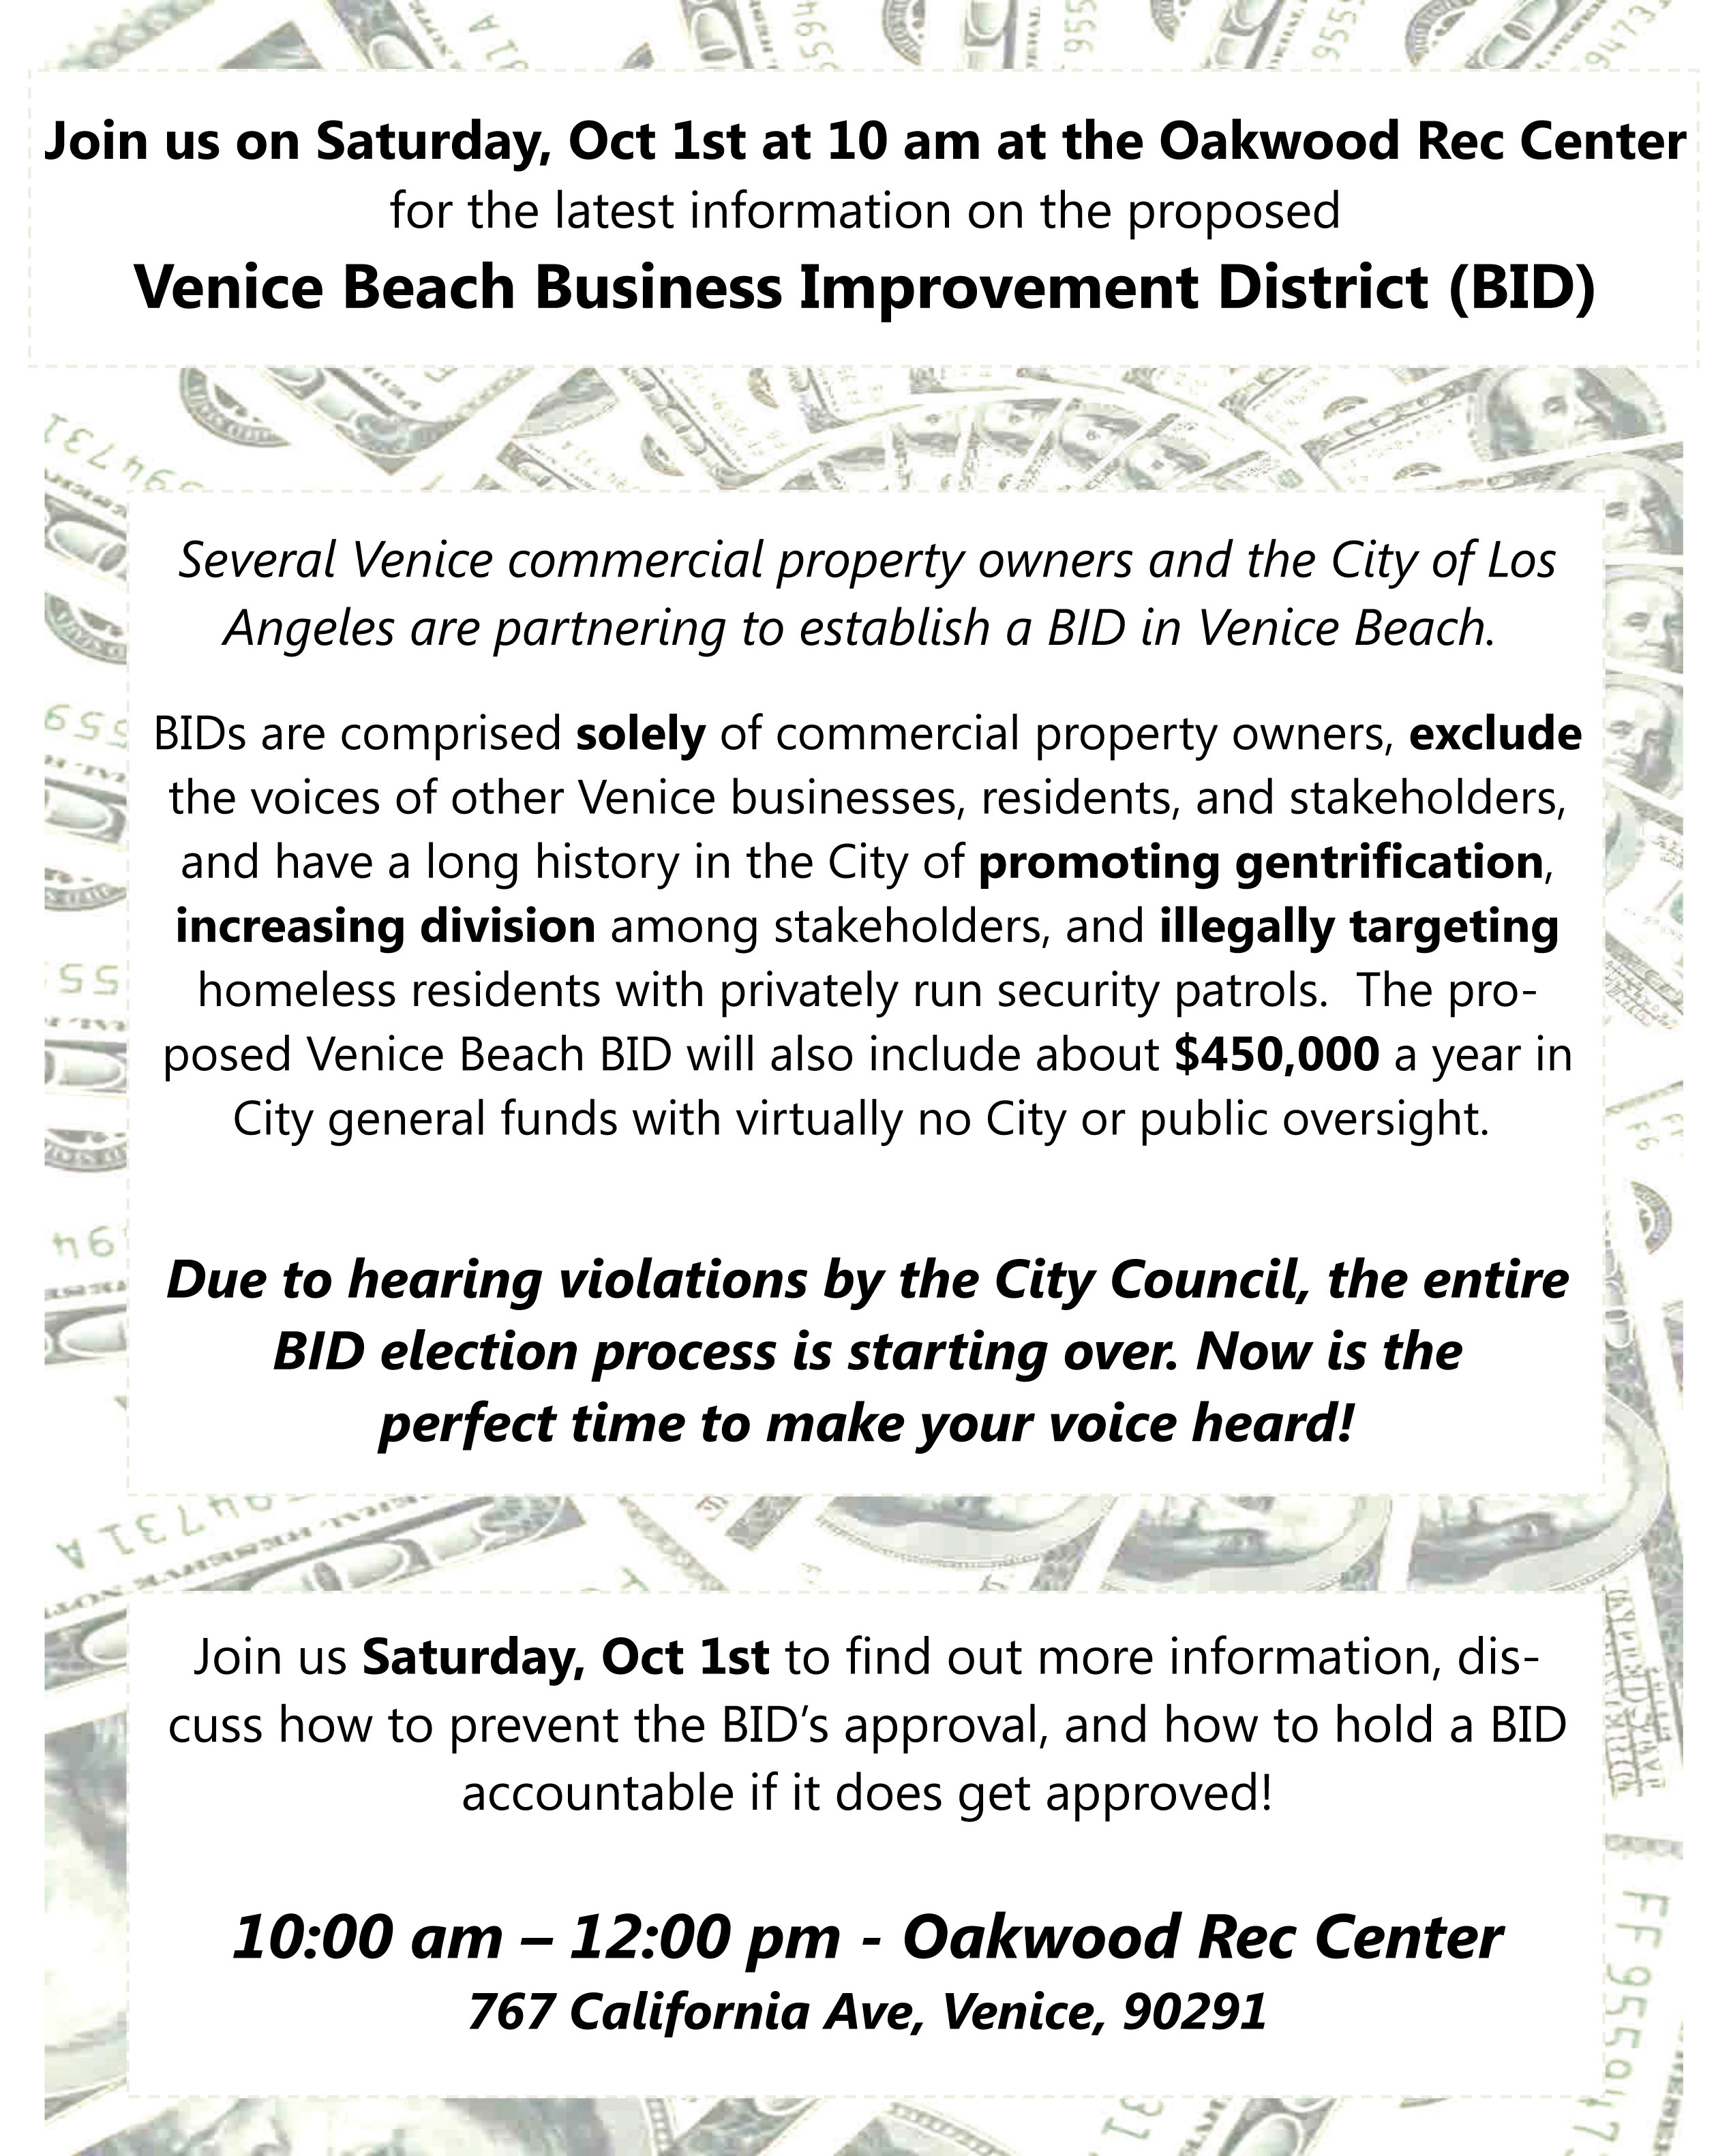 Wrap Several Venice Commercial Property Owners And The City Of Los Angeles Are Partnering To Establish A Bid In Venice Beach Wrap